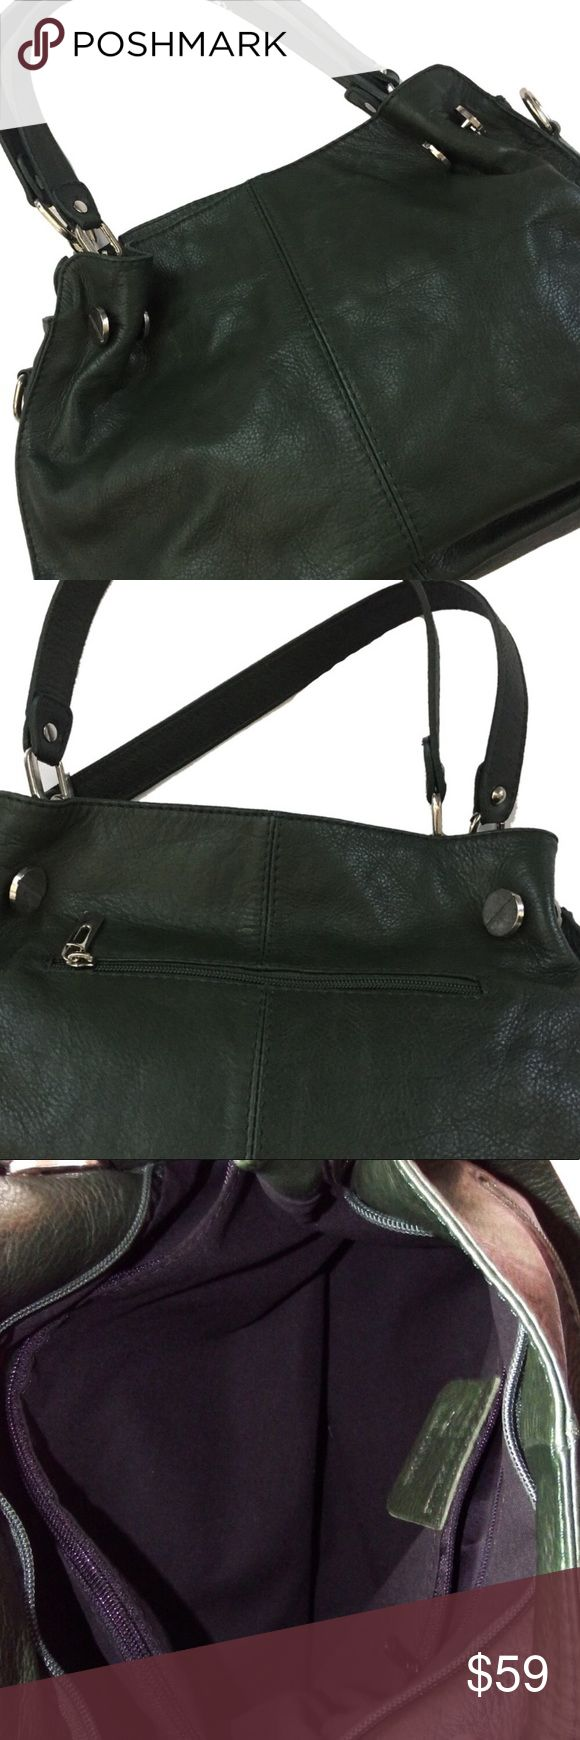 """Borse in Pelle Italian Leather Handbag Purse Emerald Green. Soft and supple leather. Silver metal accents. Handcrafted in Italy. Borse in Pelle ( which translates to """"Leather Handbags"""" ) is a luxury Italian brand.  Length 14"""" / Width 12"""" / Depth 4.5"""" / Drop 6.5""""  Details:  * Buttery soft.  * Silver metal accents.  * Zipper compartment in & out. * The top of the bag zips closed. * Missing the shoulder strap * Only used a handful of times  * Great bag!! Great condition!  Retails $160 Borse in…"""